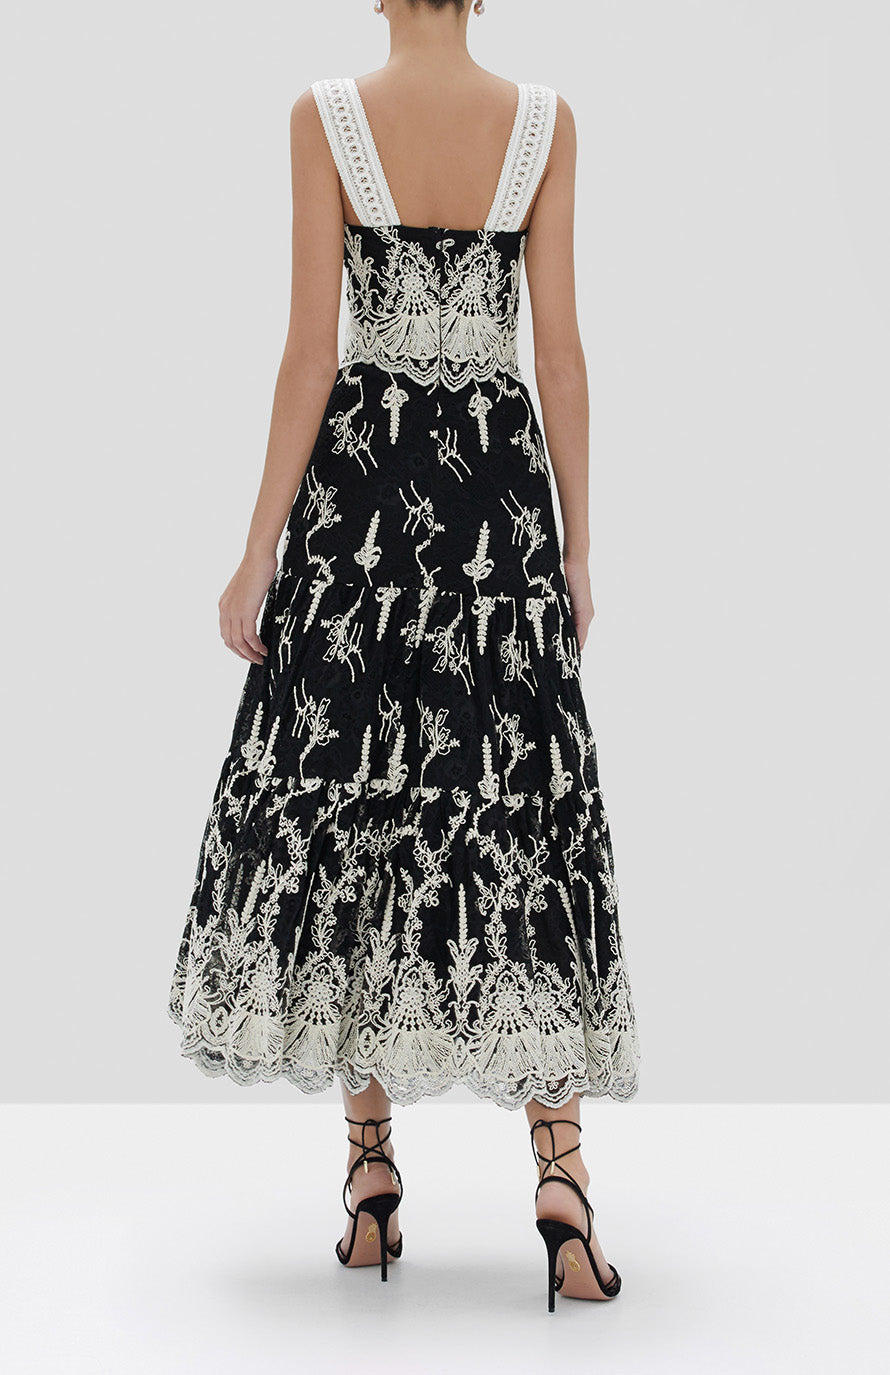 Alexis Karolina Dress in Black Embroidered Lace - Rear View